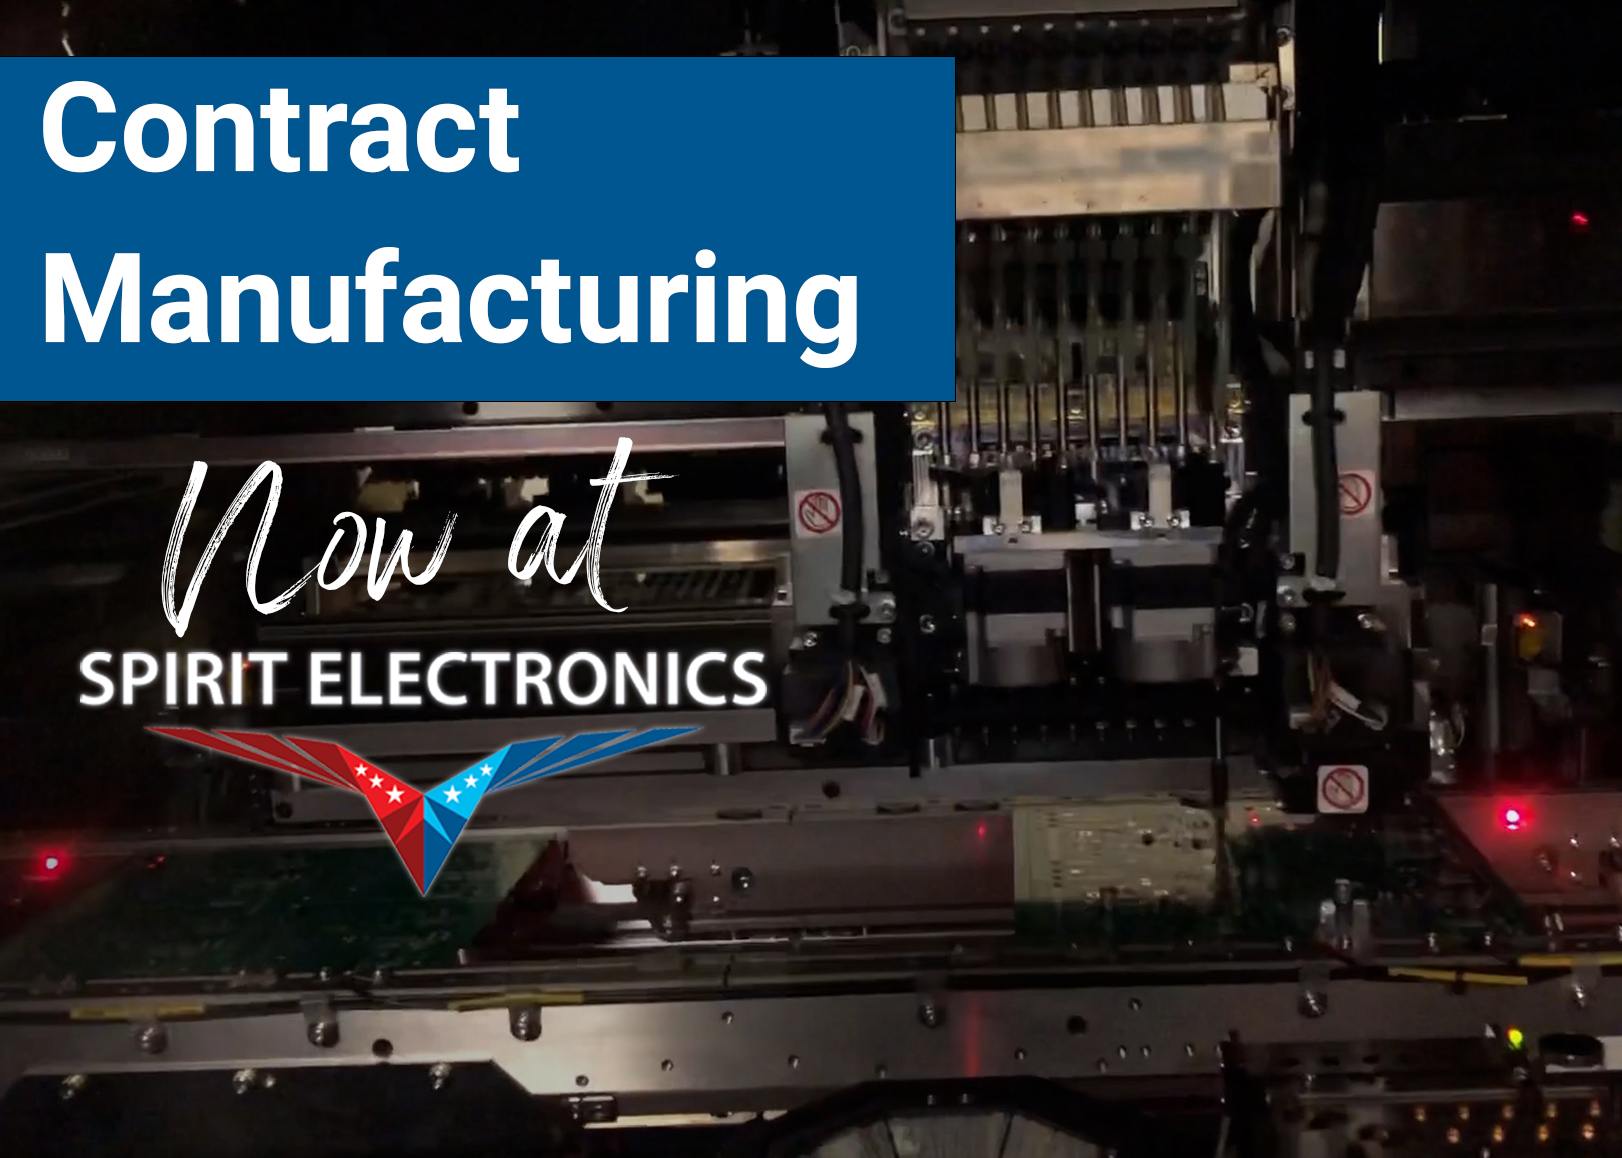 Board Assembly Contract Manufacturing Featured News Pick and Place